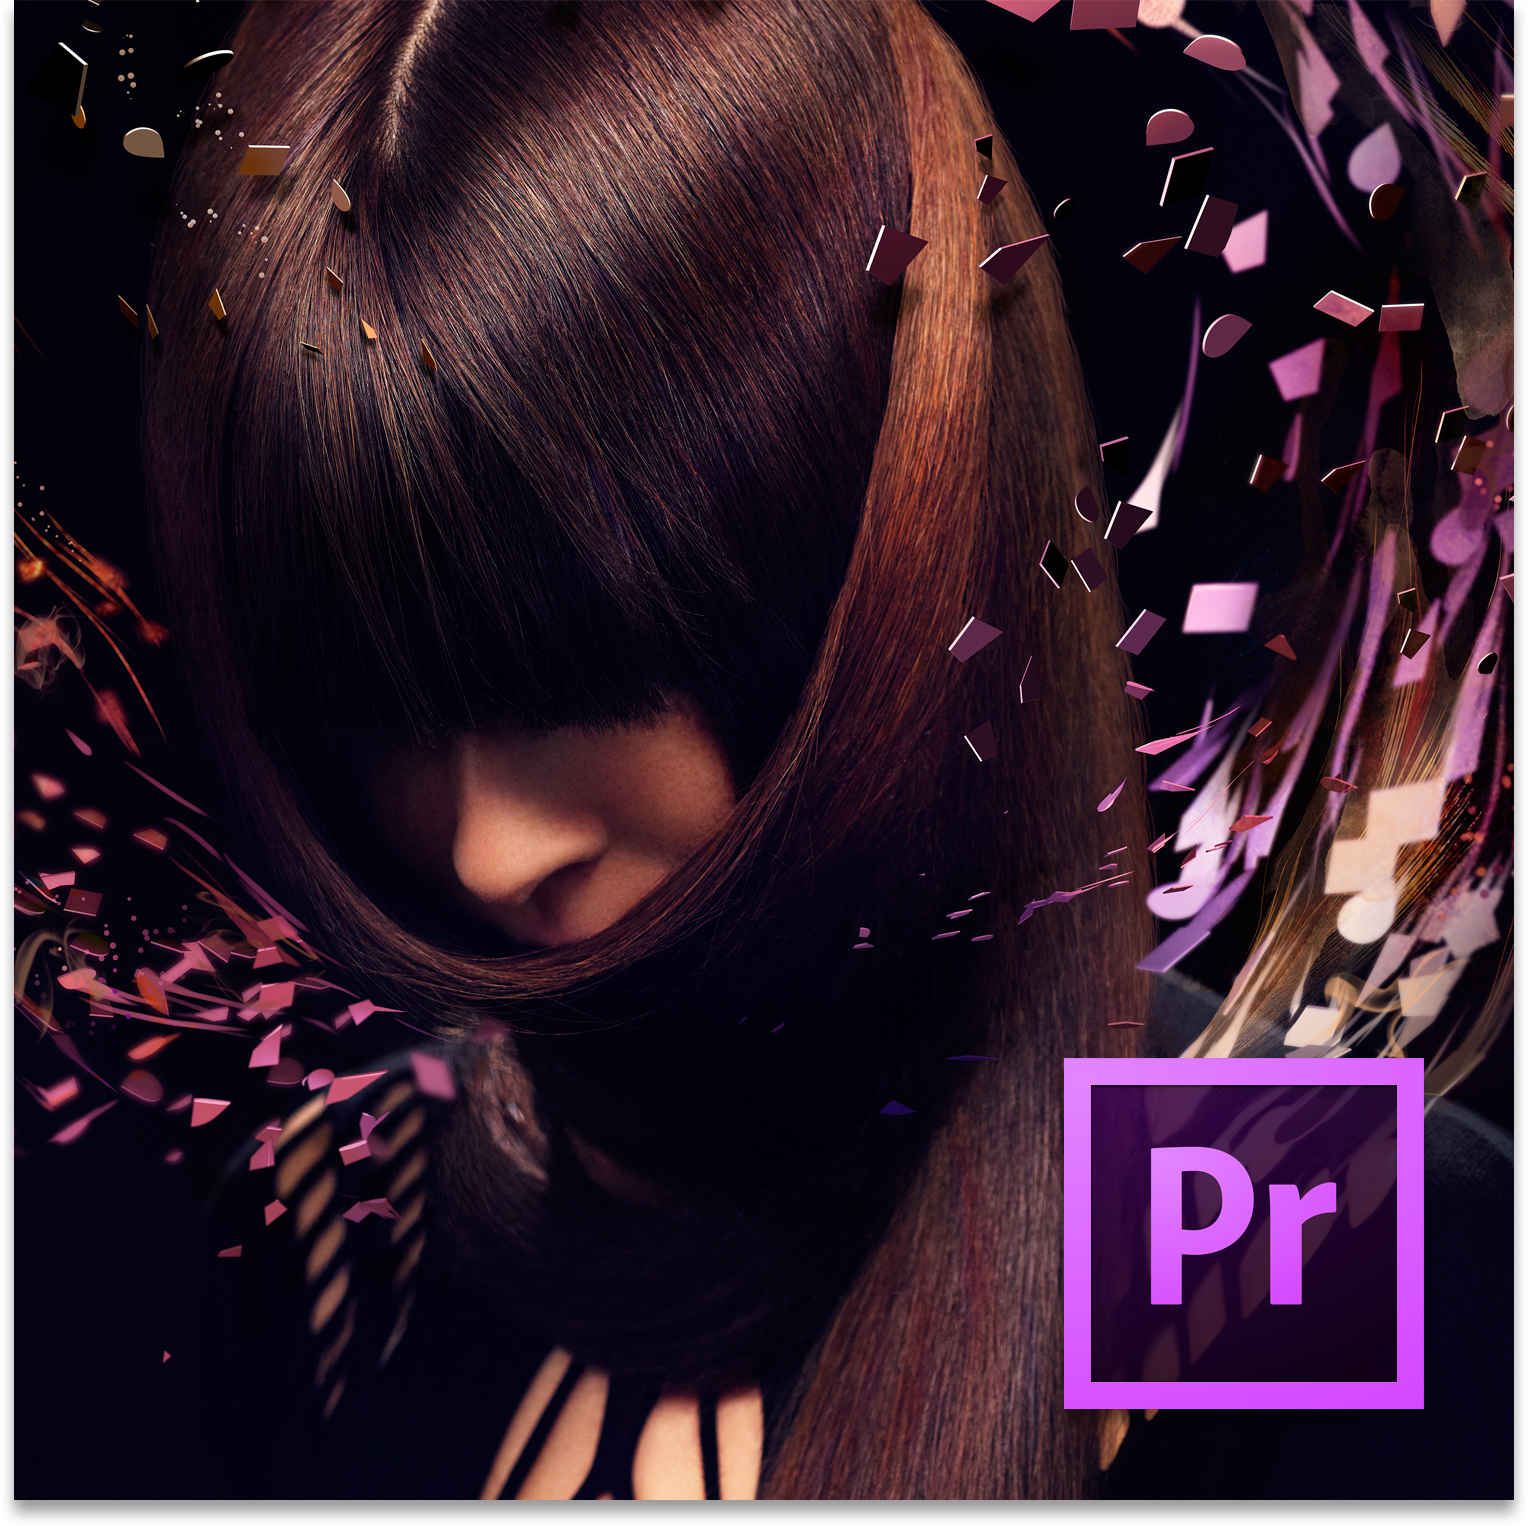 adobe premiere pro cs6 download 64 bit